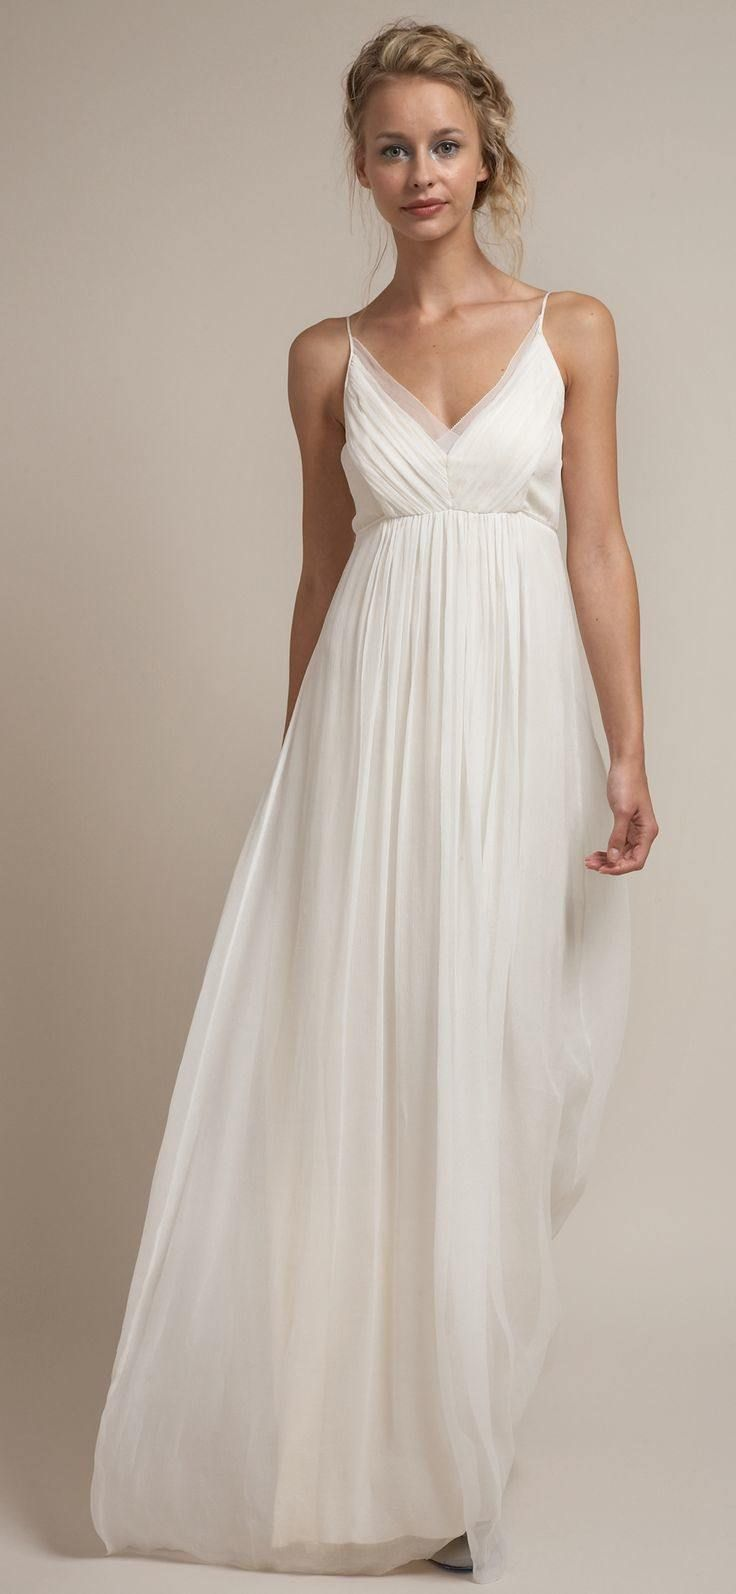 Casual Wedding Dresses For The Minimalist Wedding Wedding